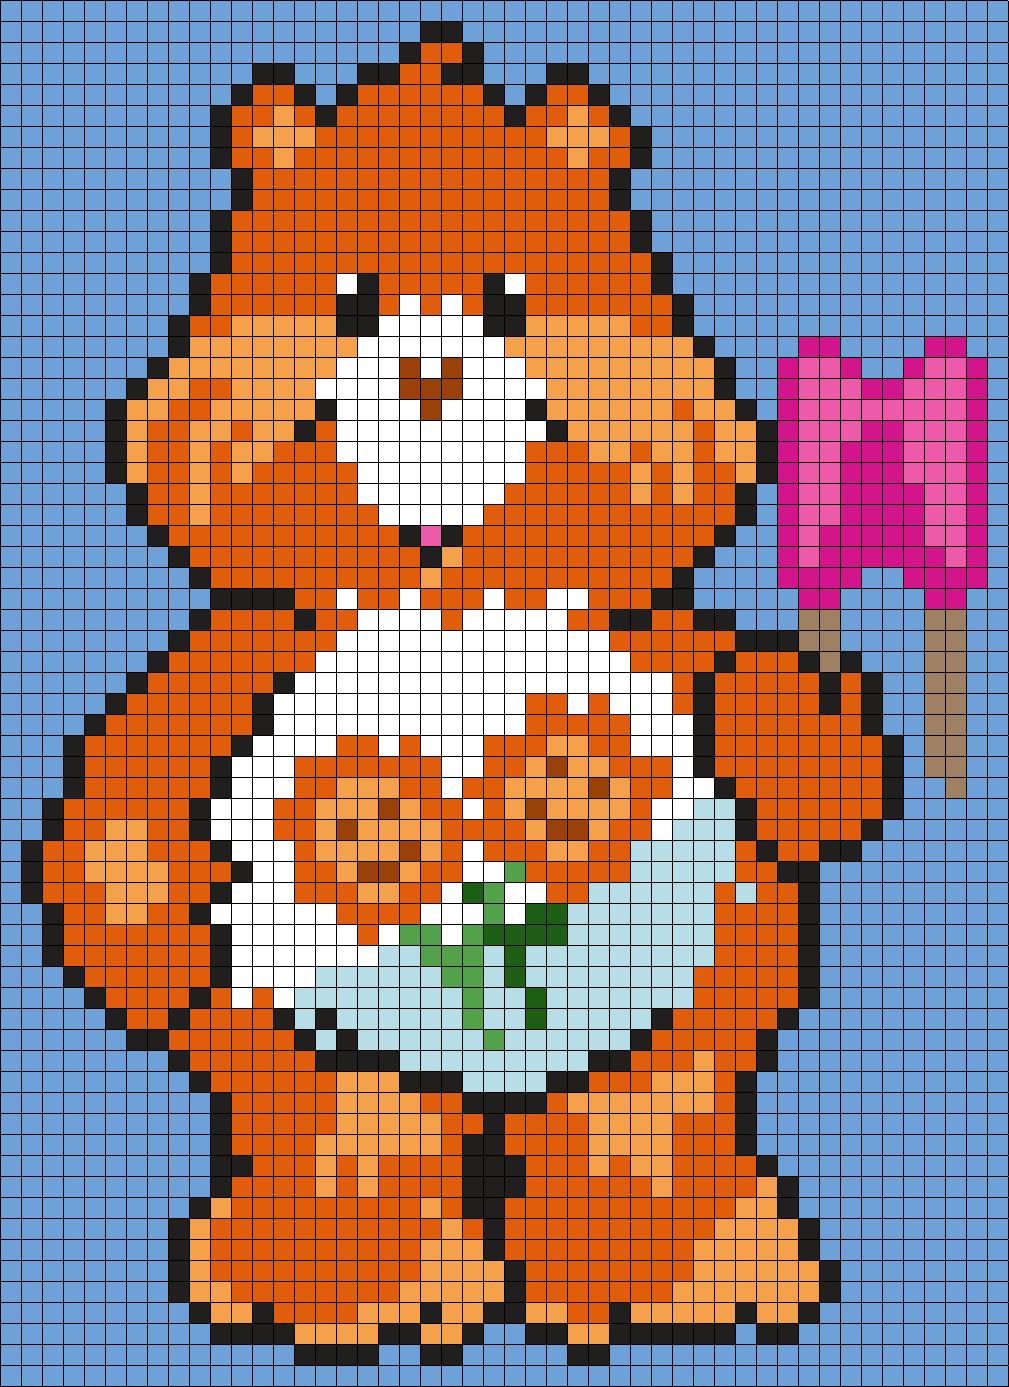 Friend Bear From The Care Bears (Square)